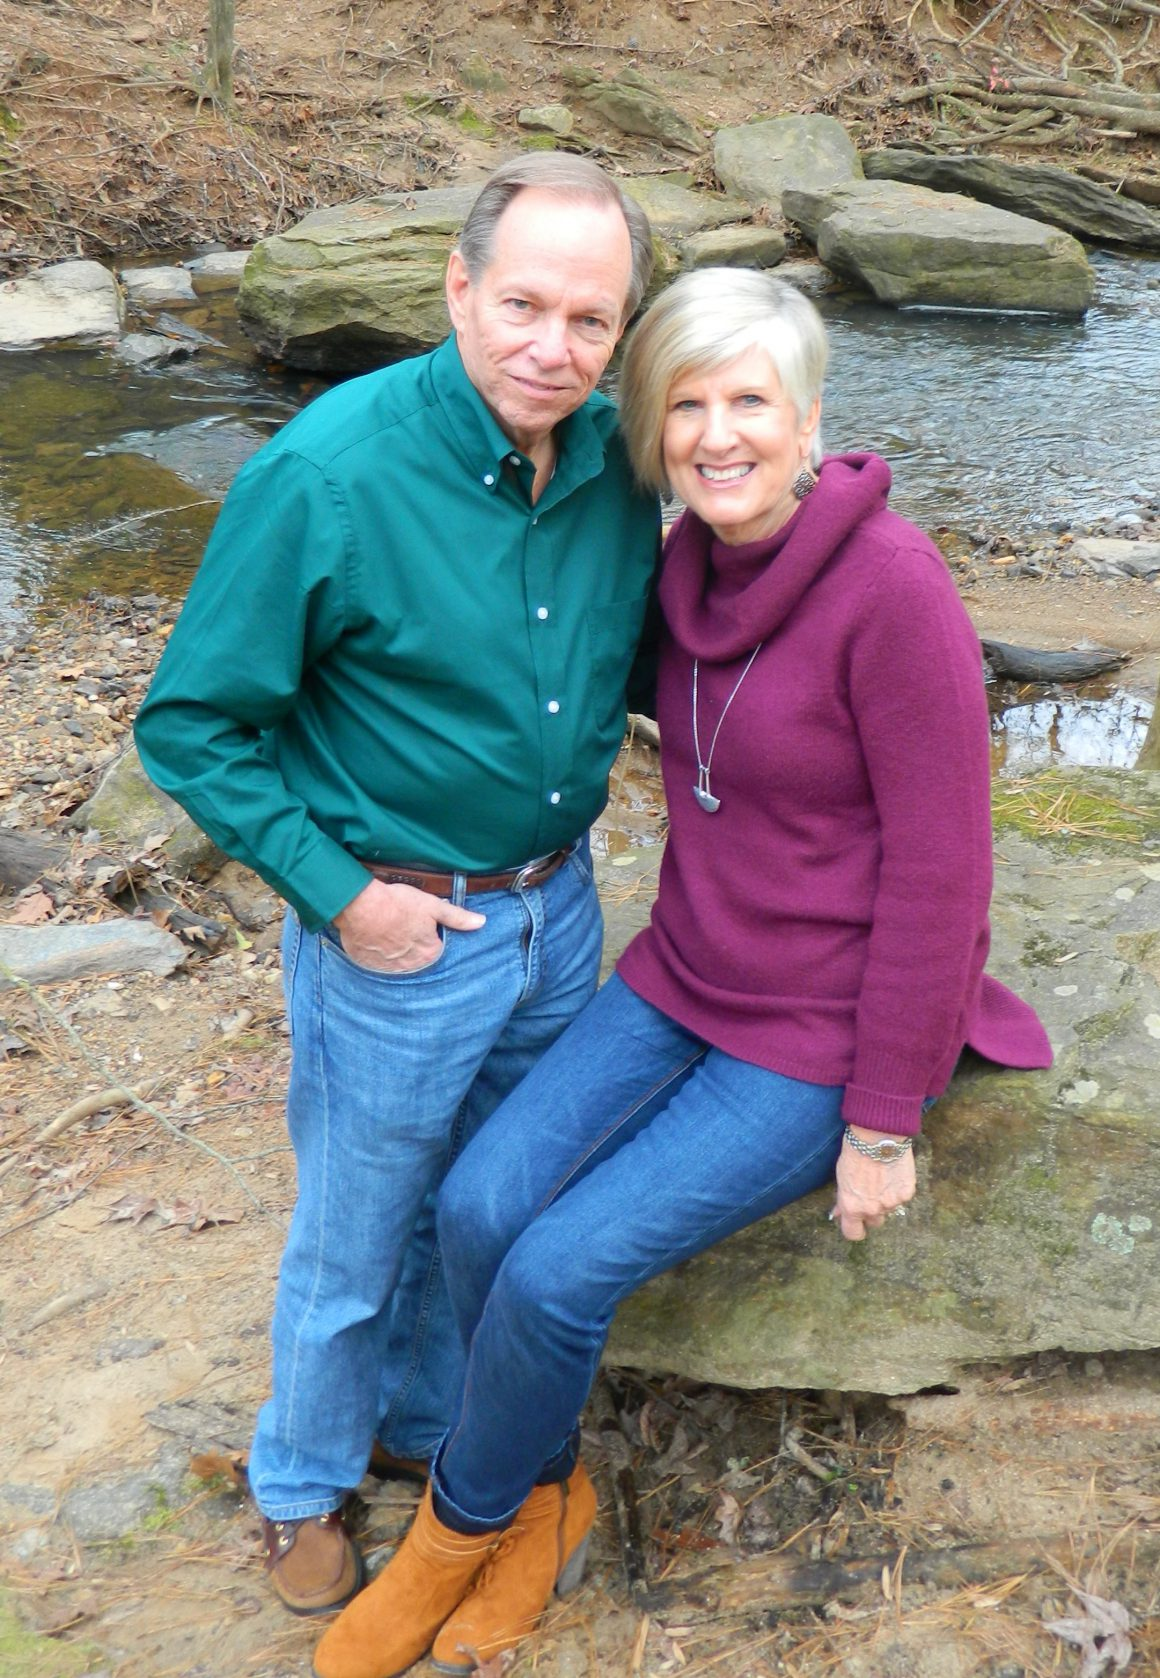 Jim and Kathy Paullin are Bonvera team leaders and entrepreneurs who reside in Georgia.